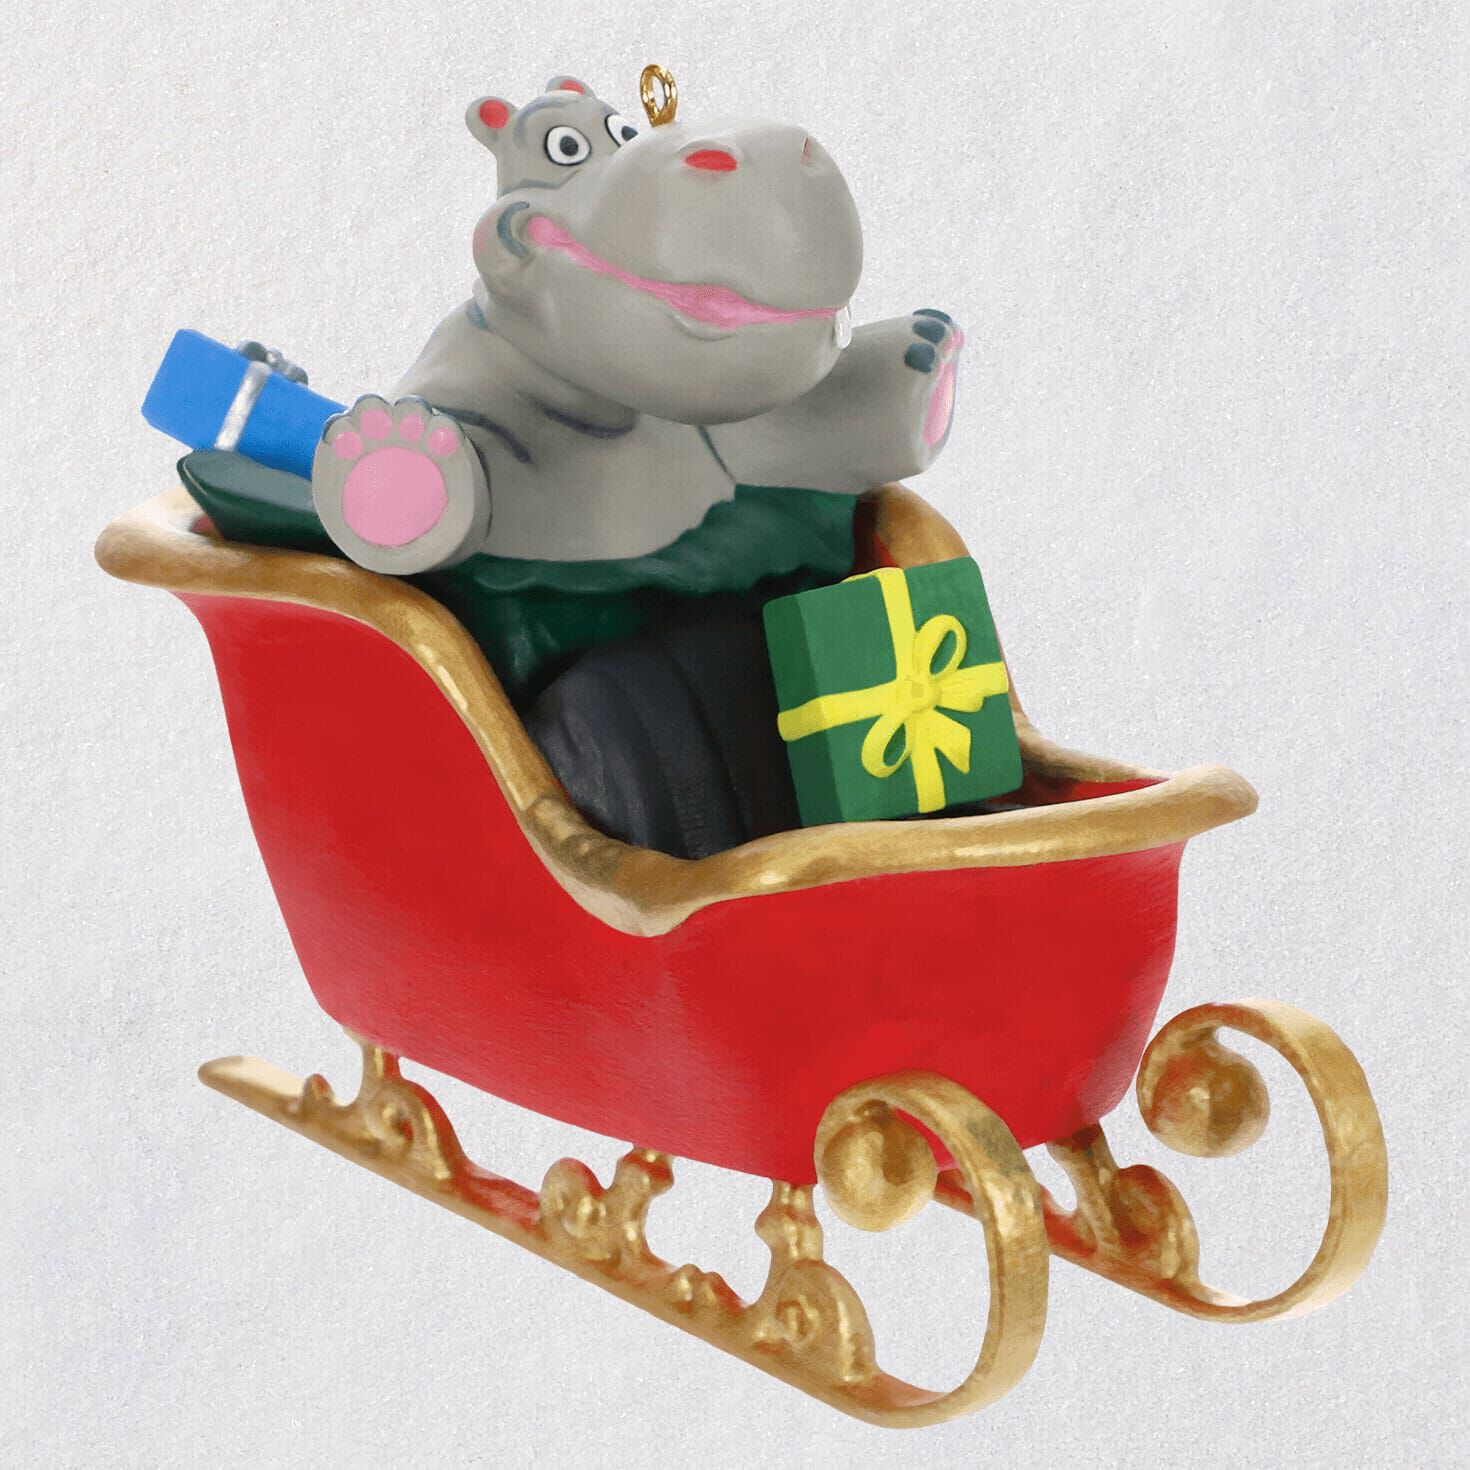 I Want A Hippopotamus For Christmas Lyrics.I Want A Hippopotamus For Christmas Musical Ornament